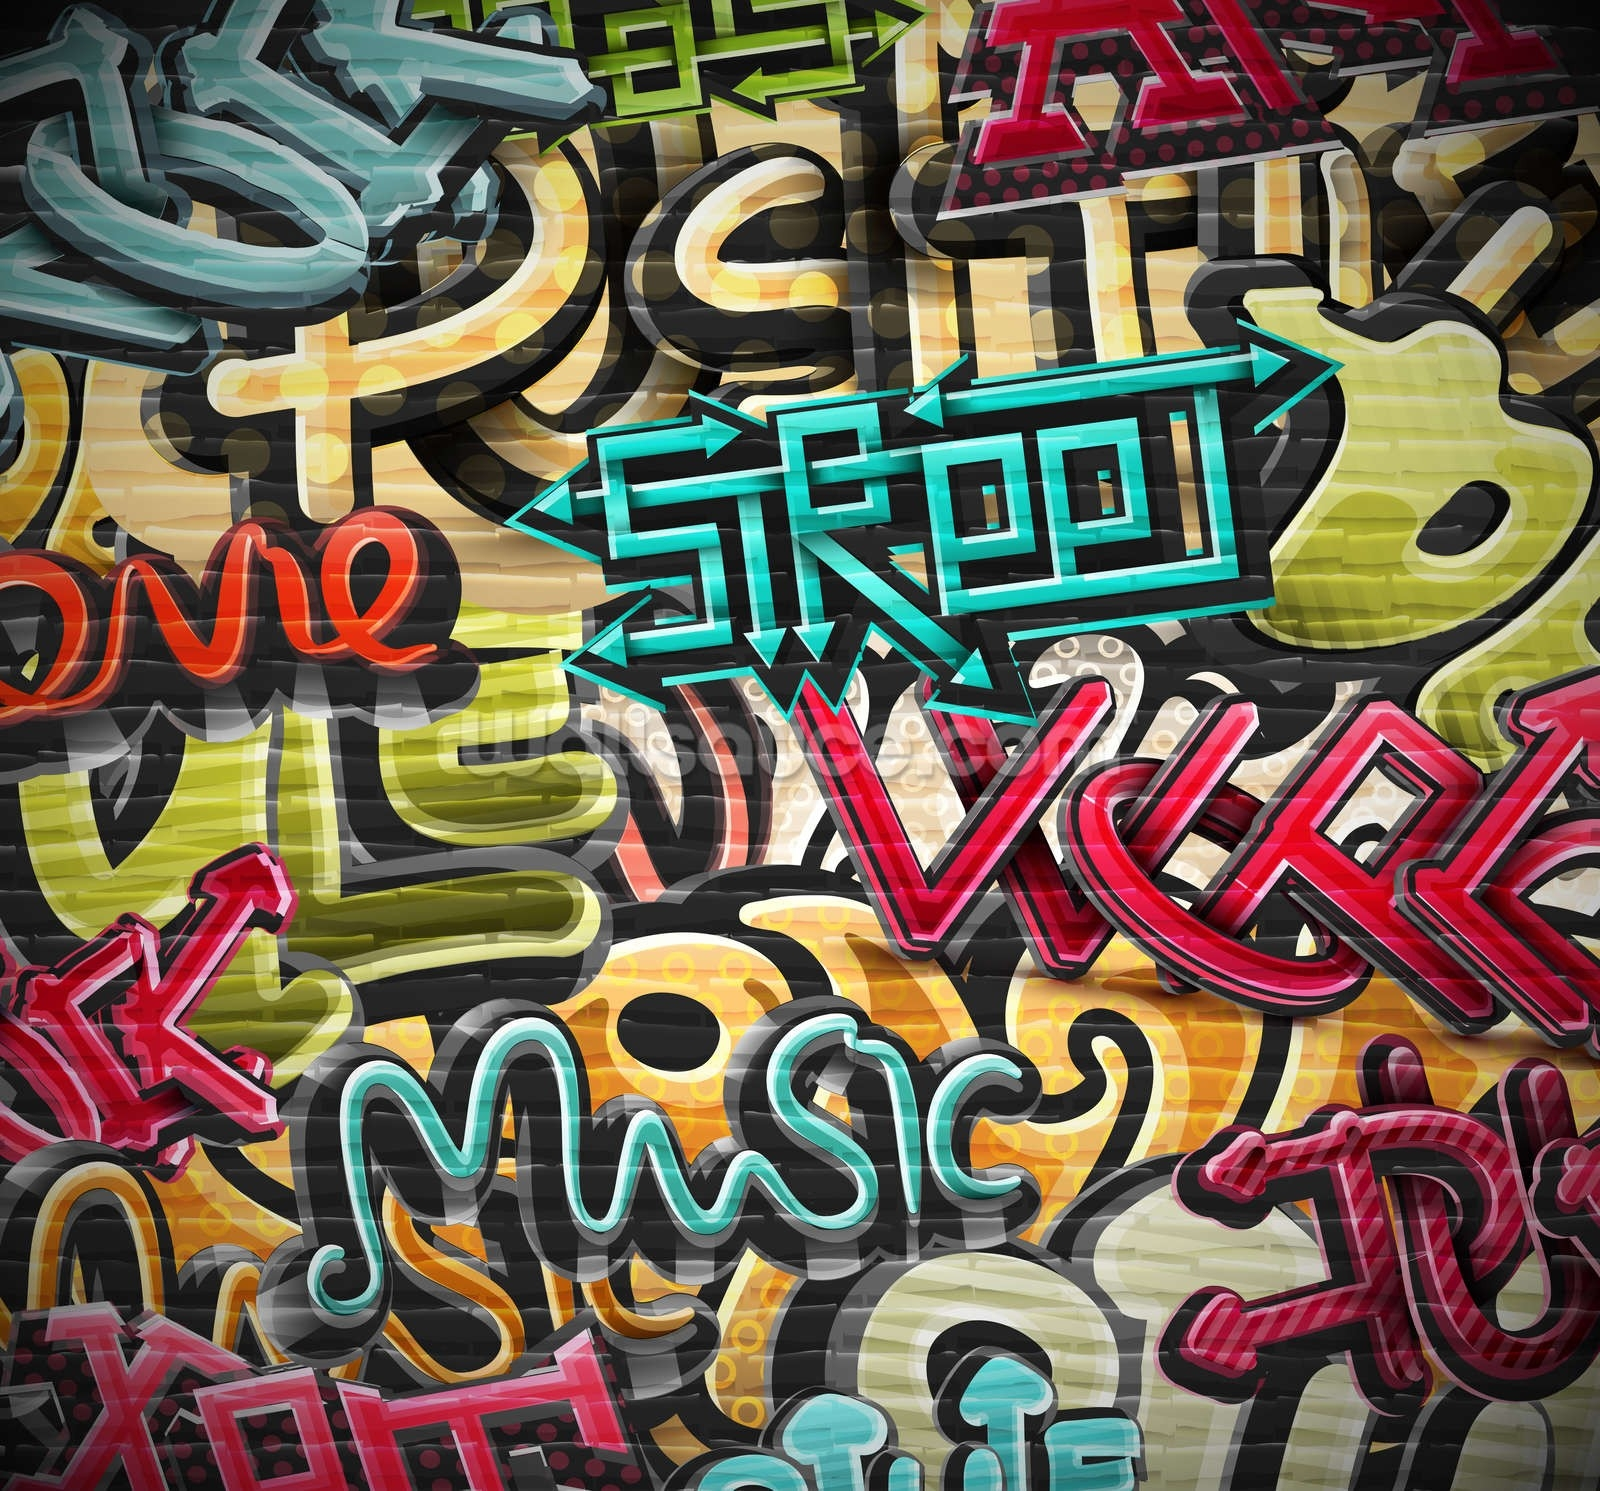 Graffiti - Street Wallpaper Wall Mural | Wallsauce Australia for Street Wall Art Wallpaper 29969